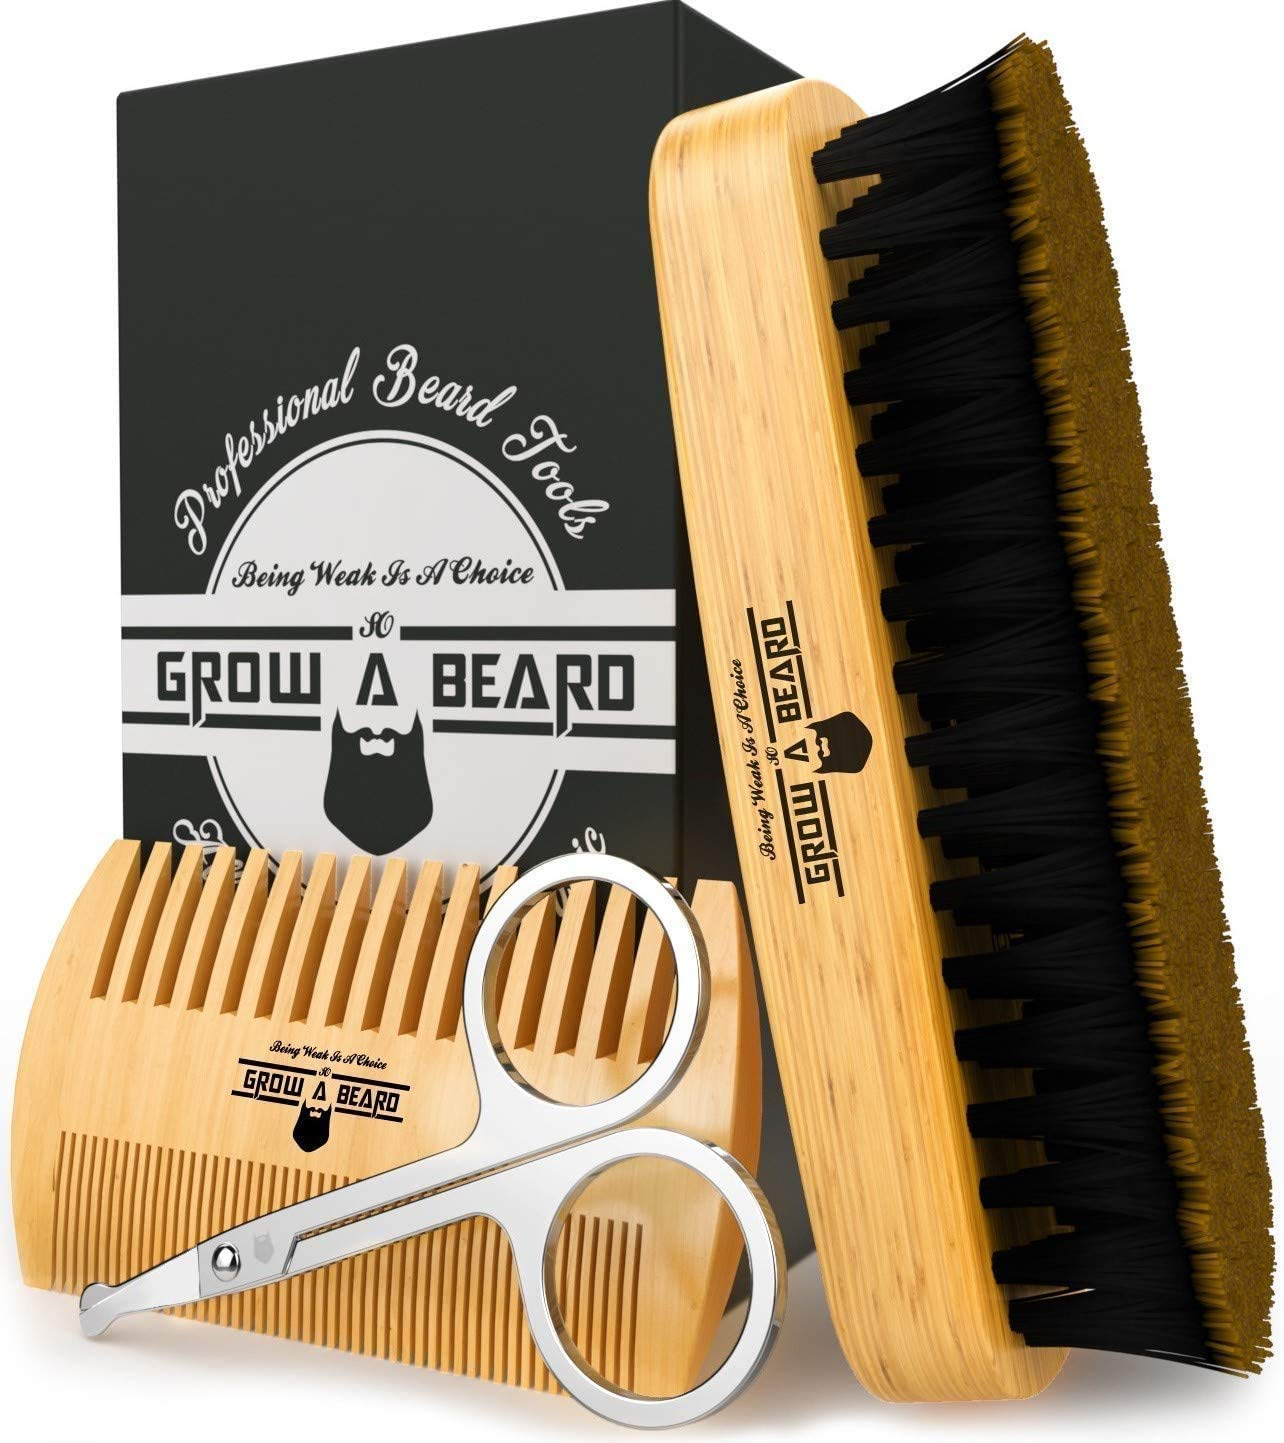 Beard Brush & Comb Set w/ Beard Scissors Grooming Kit, Beard Brush For Men, Natural Boar Bristle Beard Brush, Men's Beard Brush, Boars Hair Beard Brush, Beard Brush Set, Wood Comb Great for Mustaches